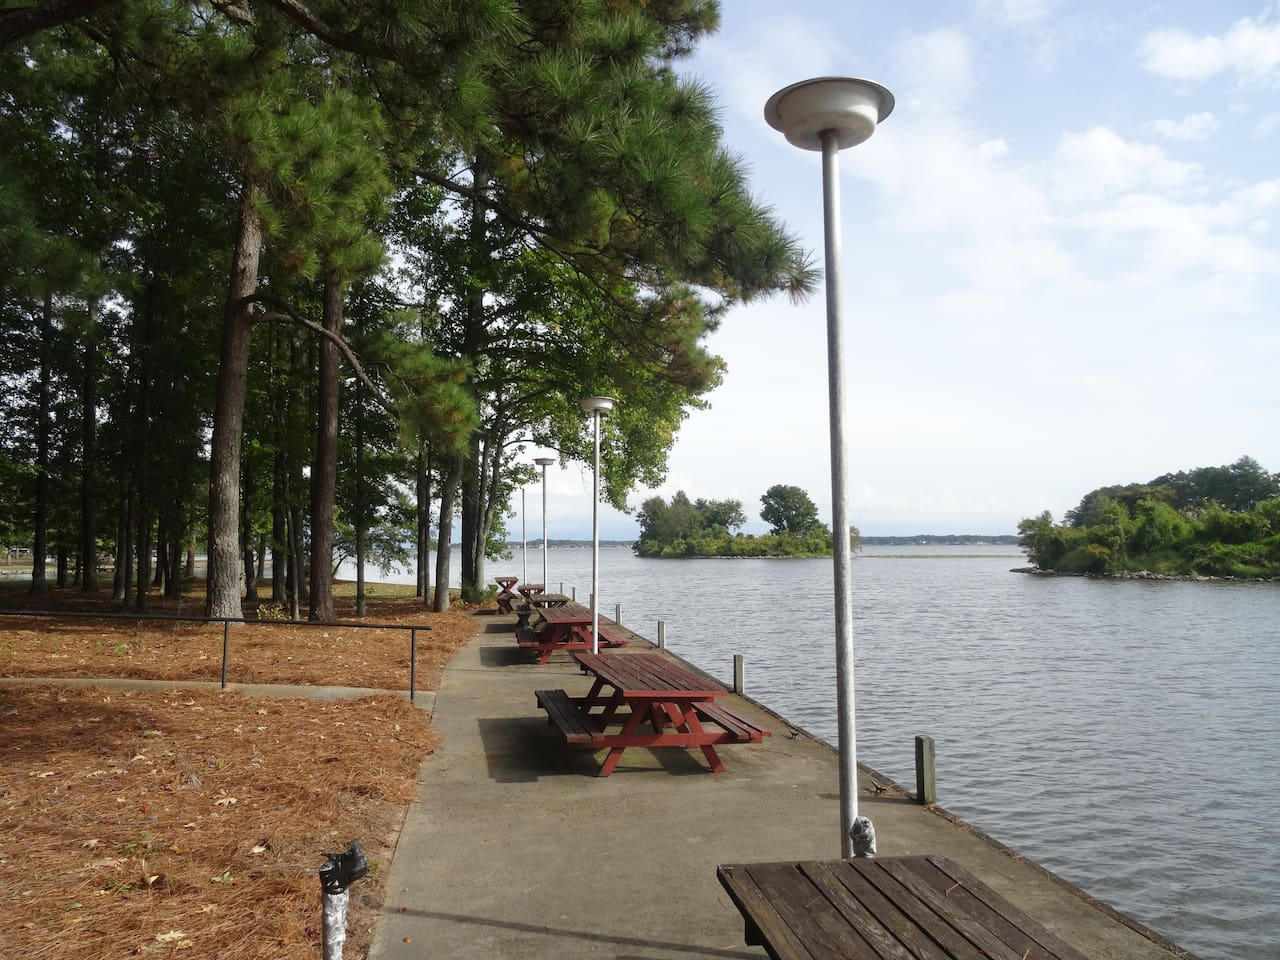 Large lake front complete with picnic tables and lights